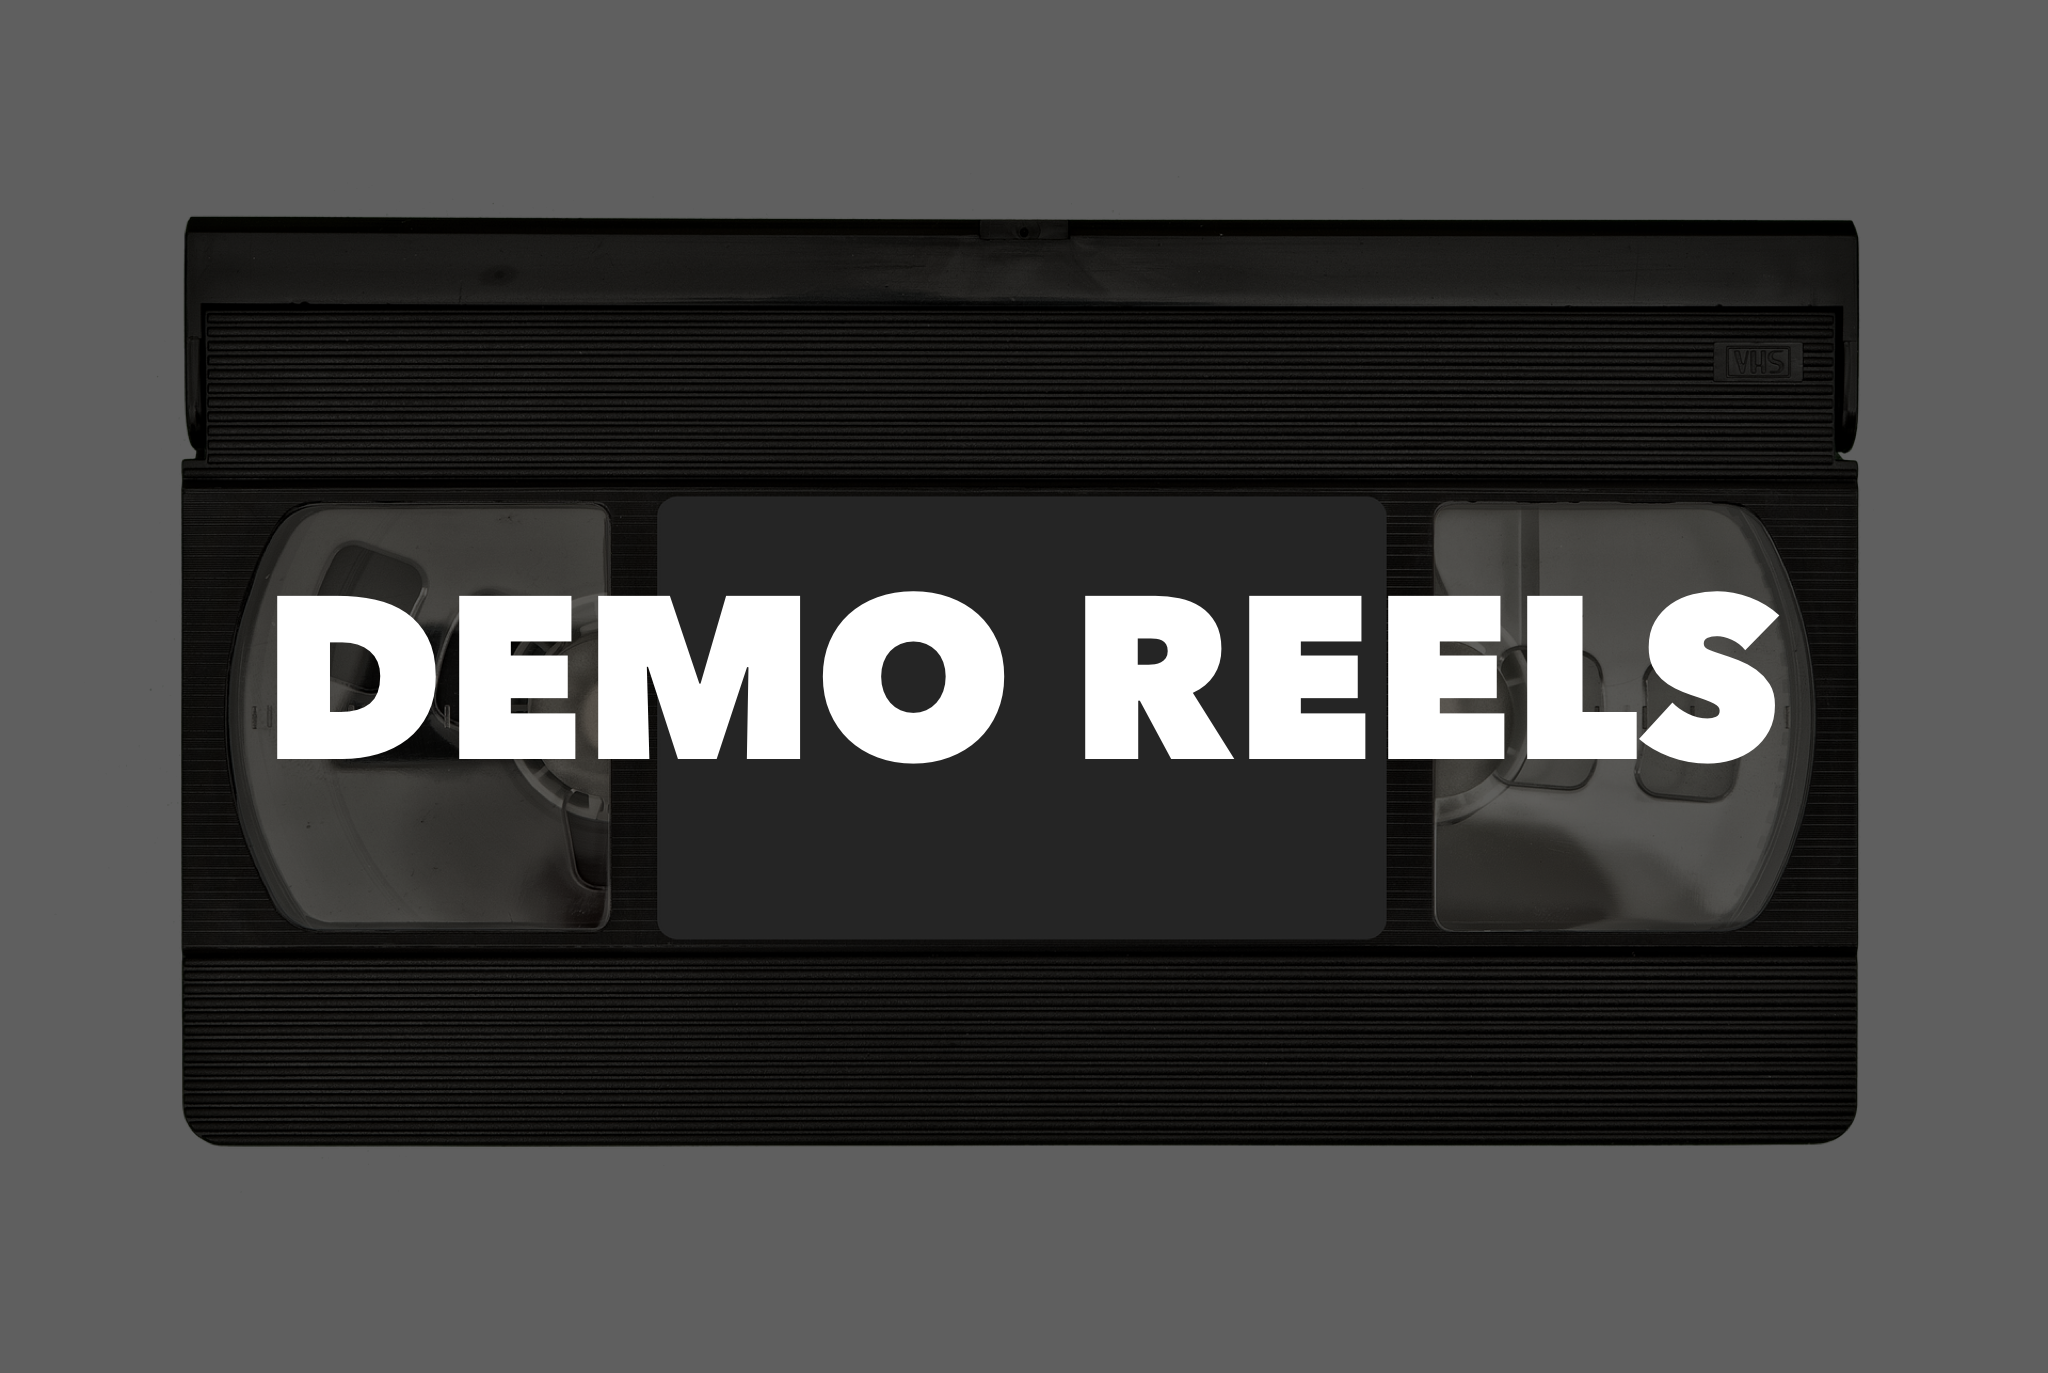 how to build a television demo reel